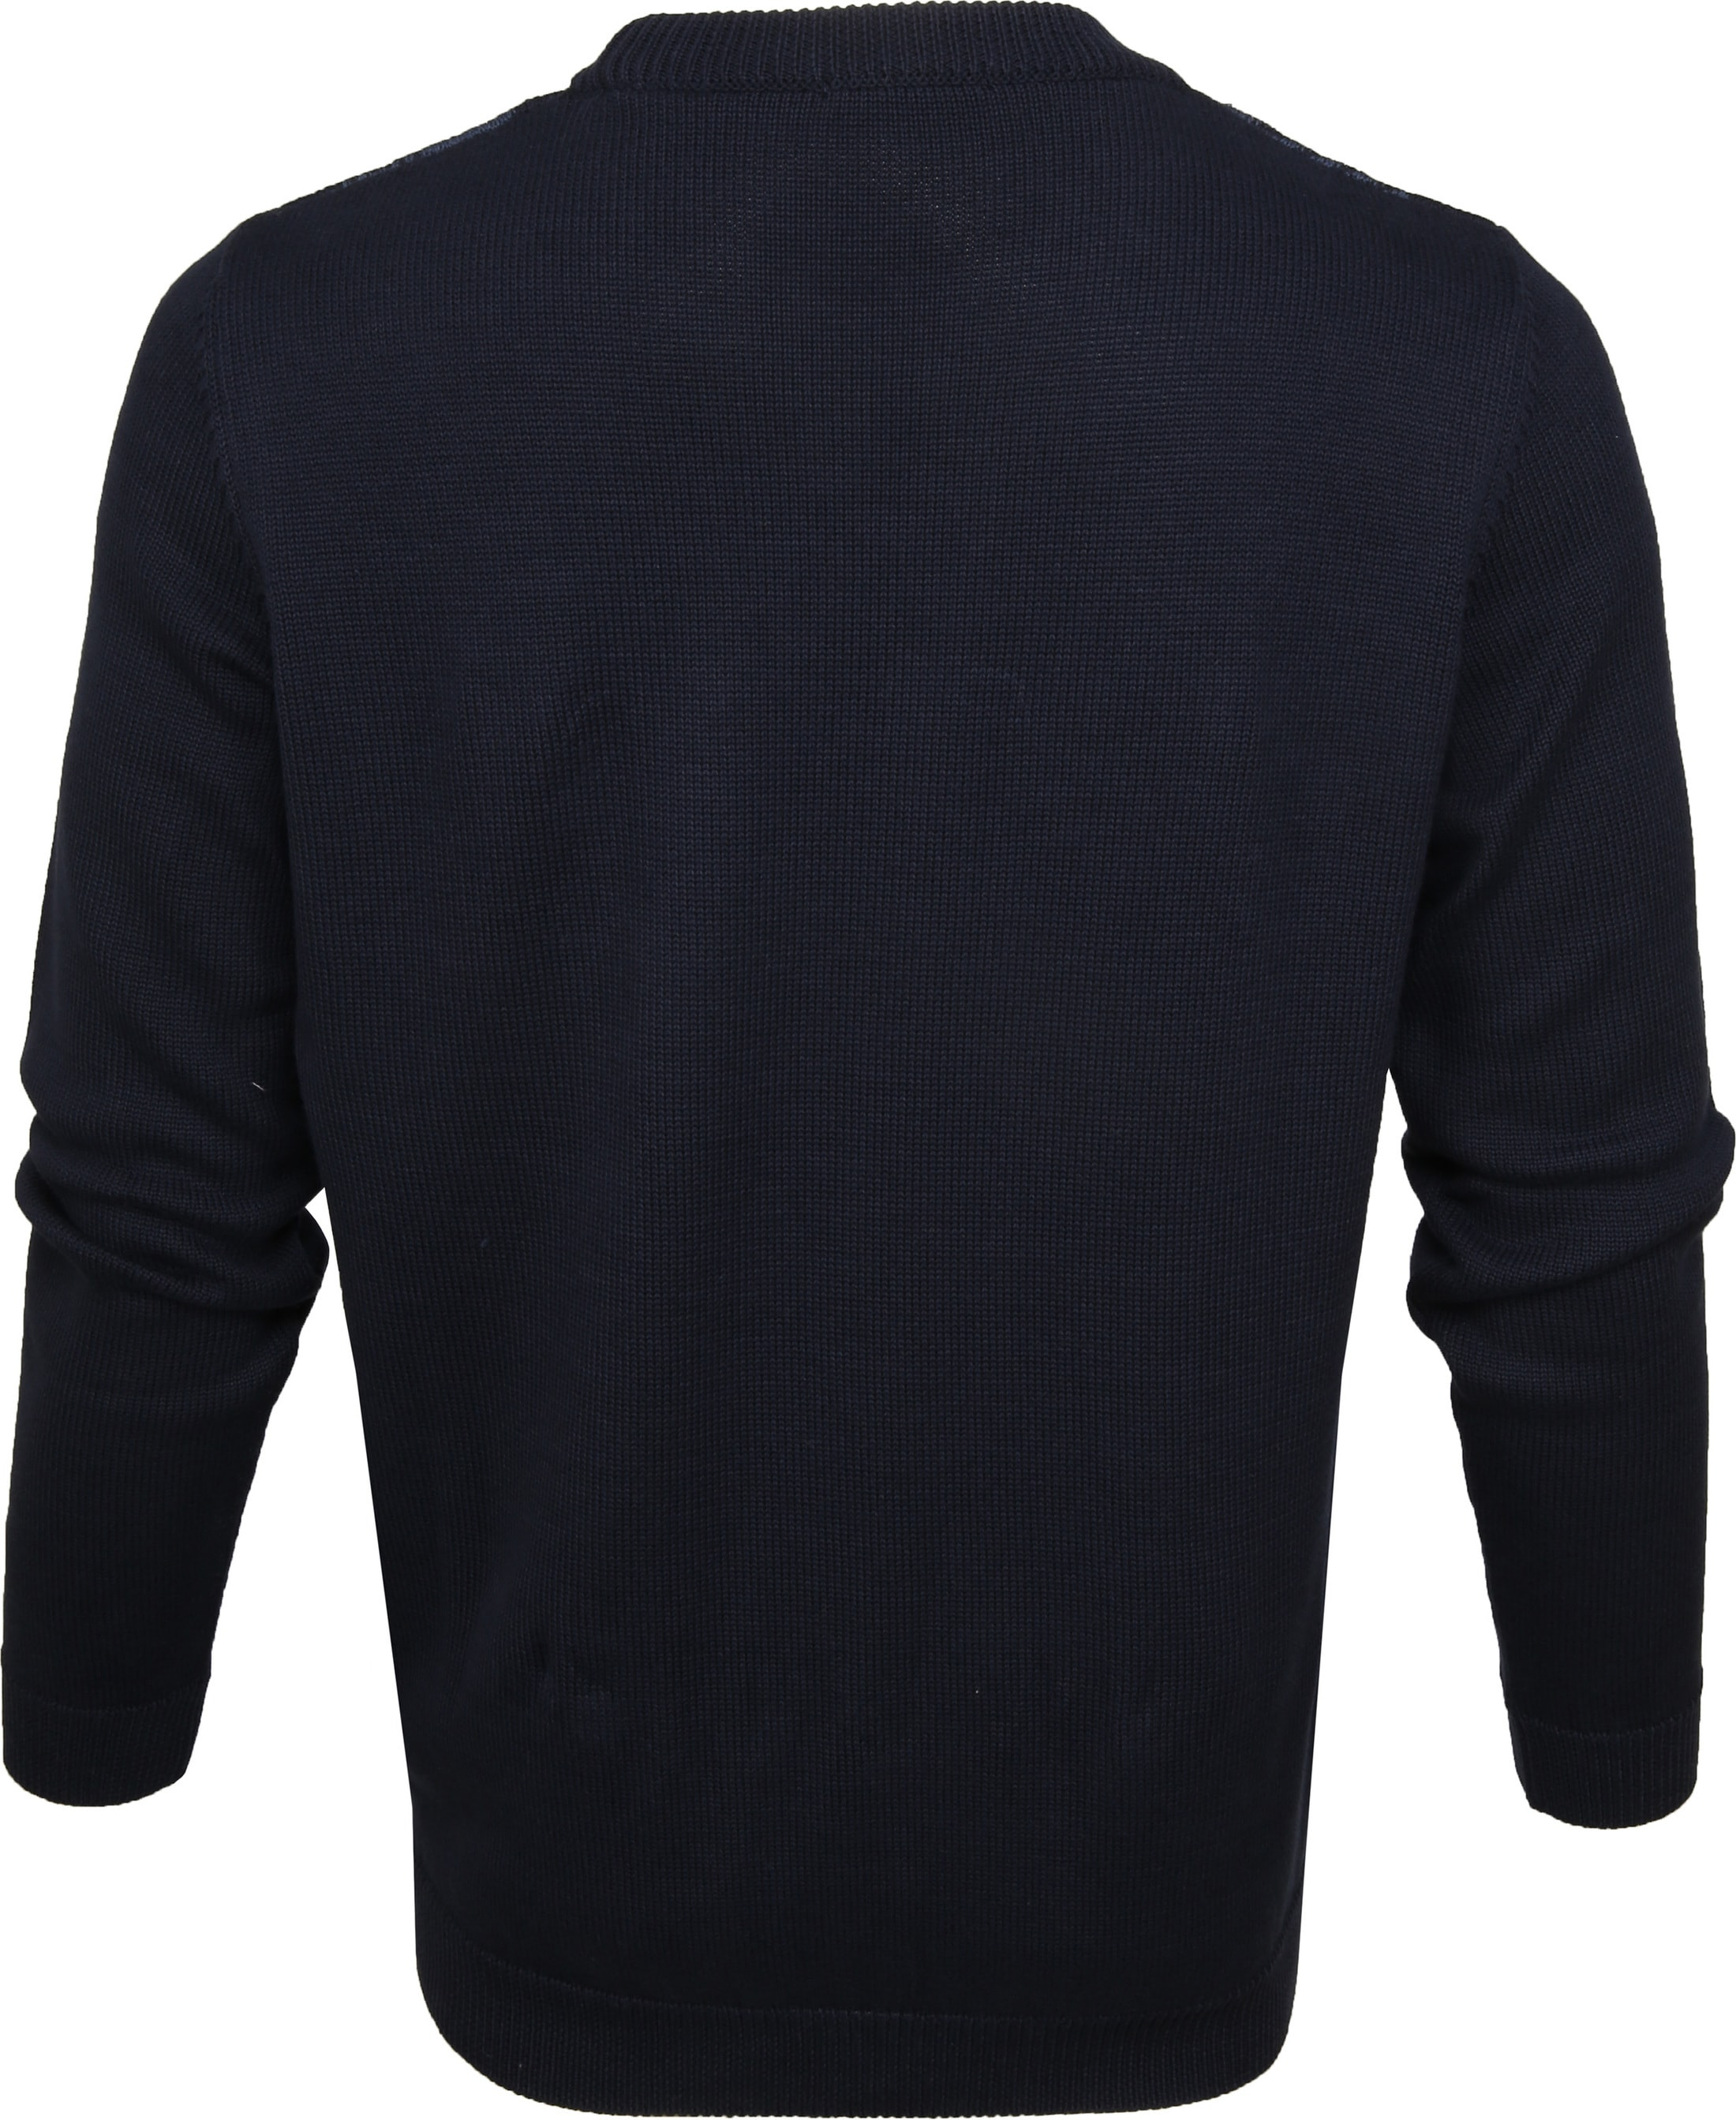 KnowledgeCotton Apparel Pullover Dessin Navy foto 3